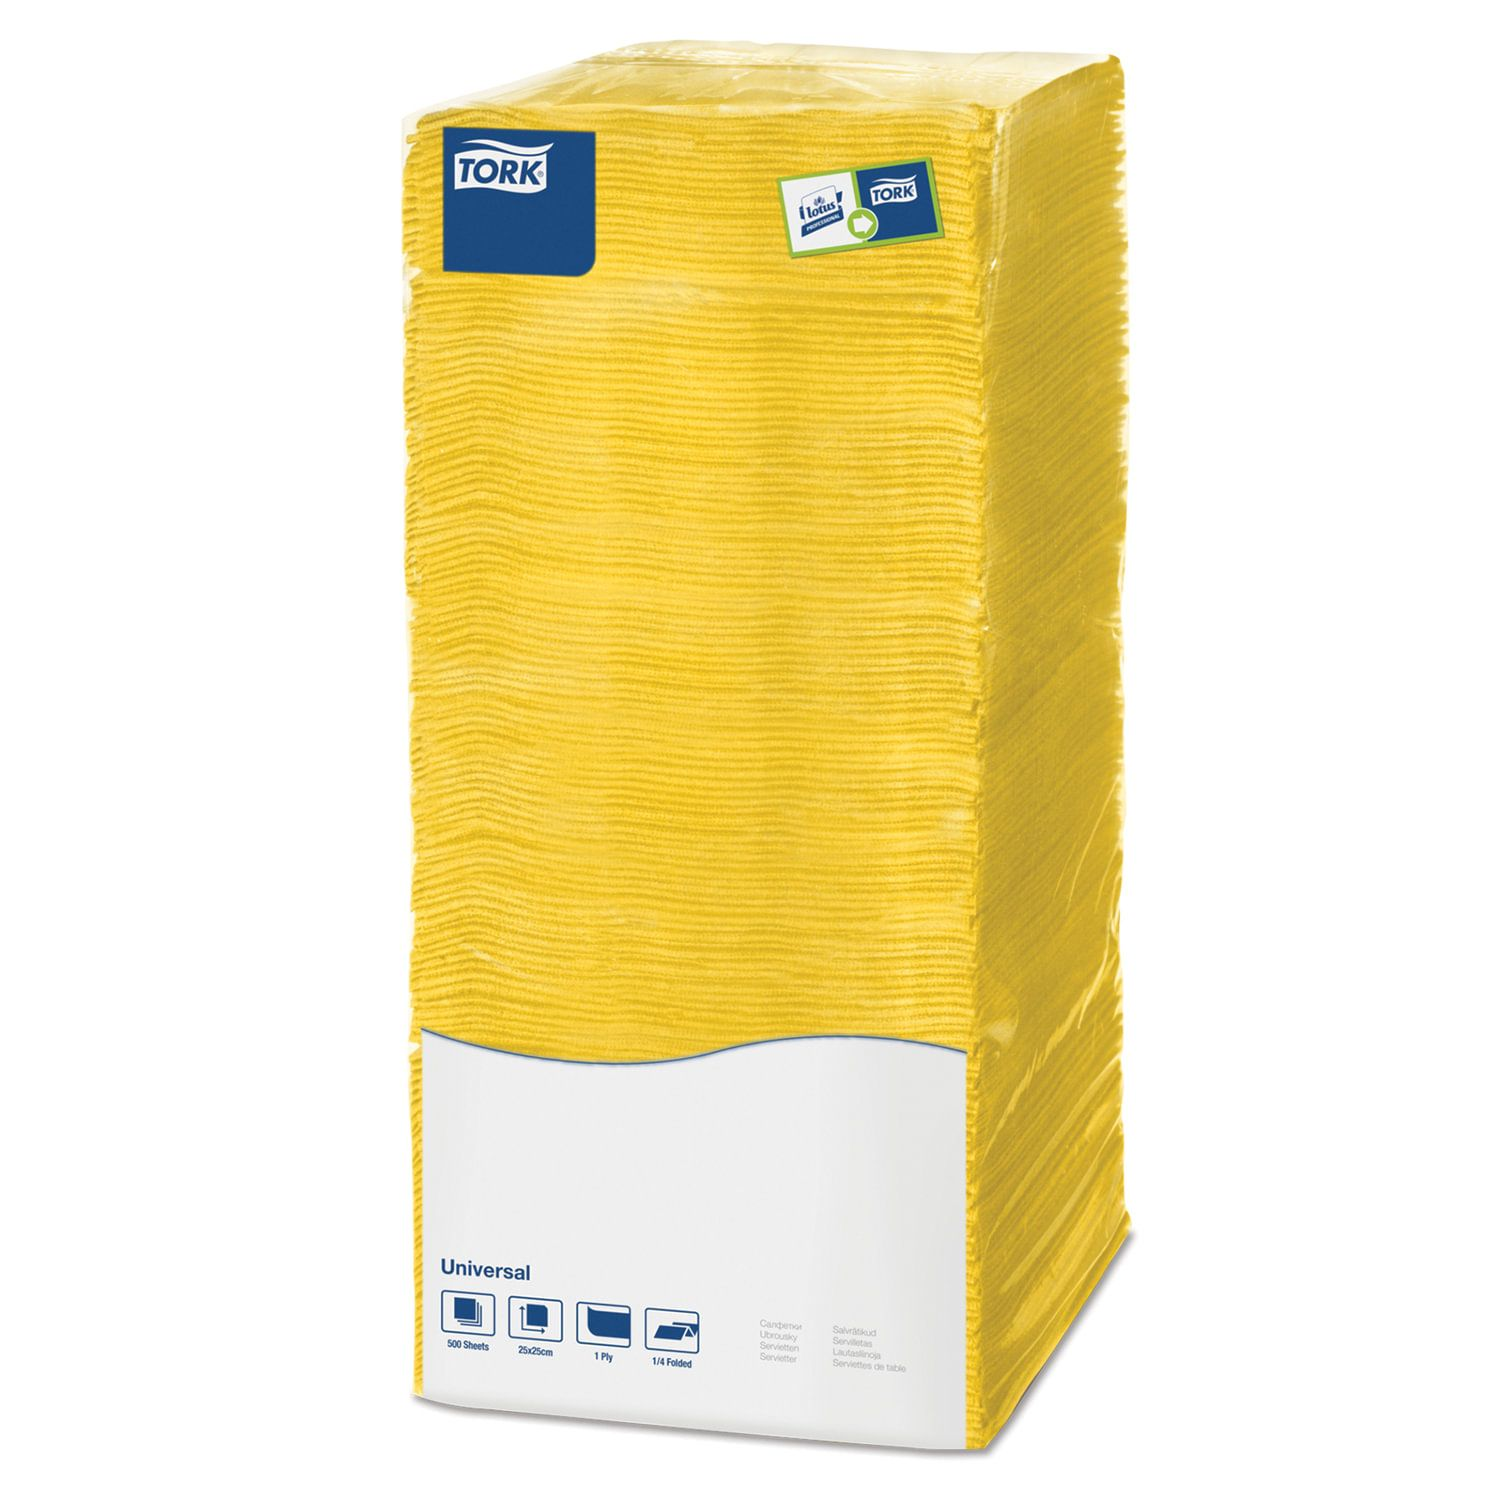 TORK / Napkins Big Pack yellow, 25x25, 500 pcs.